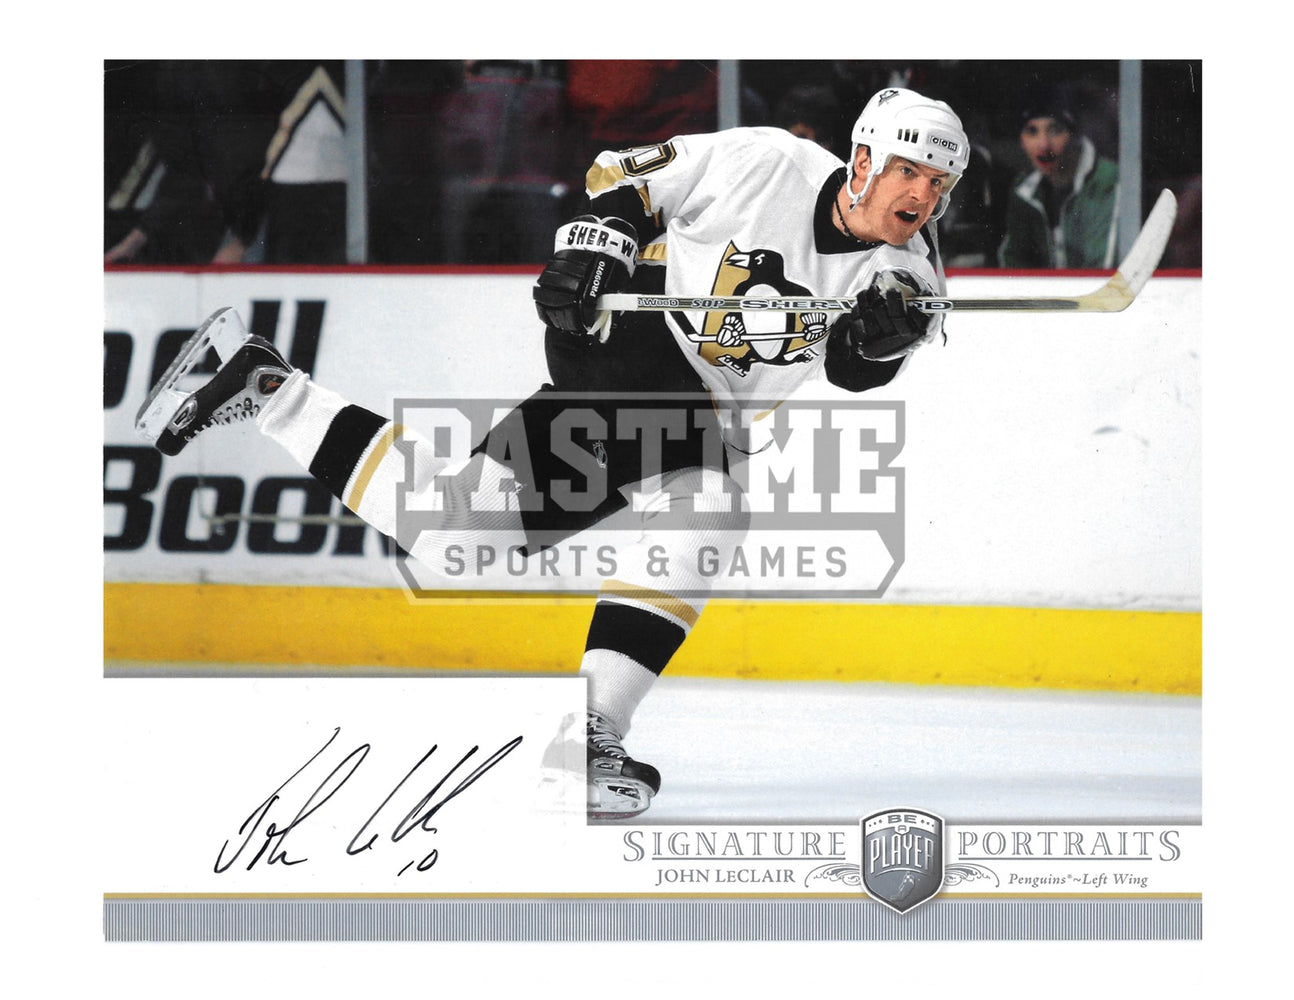 John Leclair Autographed 8X10 Pittsburgh Penguins Away Jersey (Signature Portraits) - Pastime Sports & Games